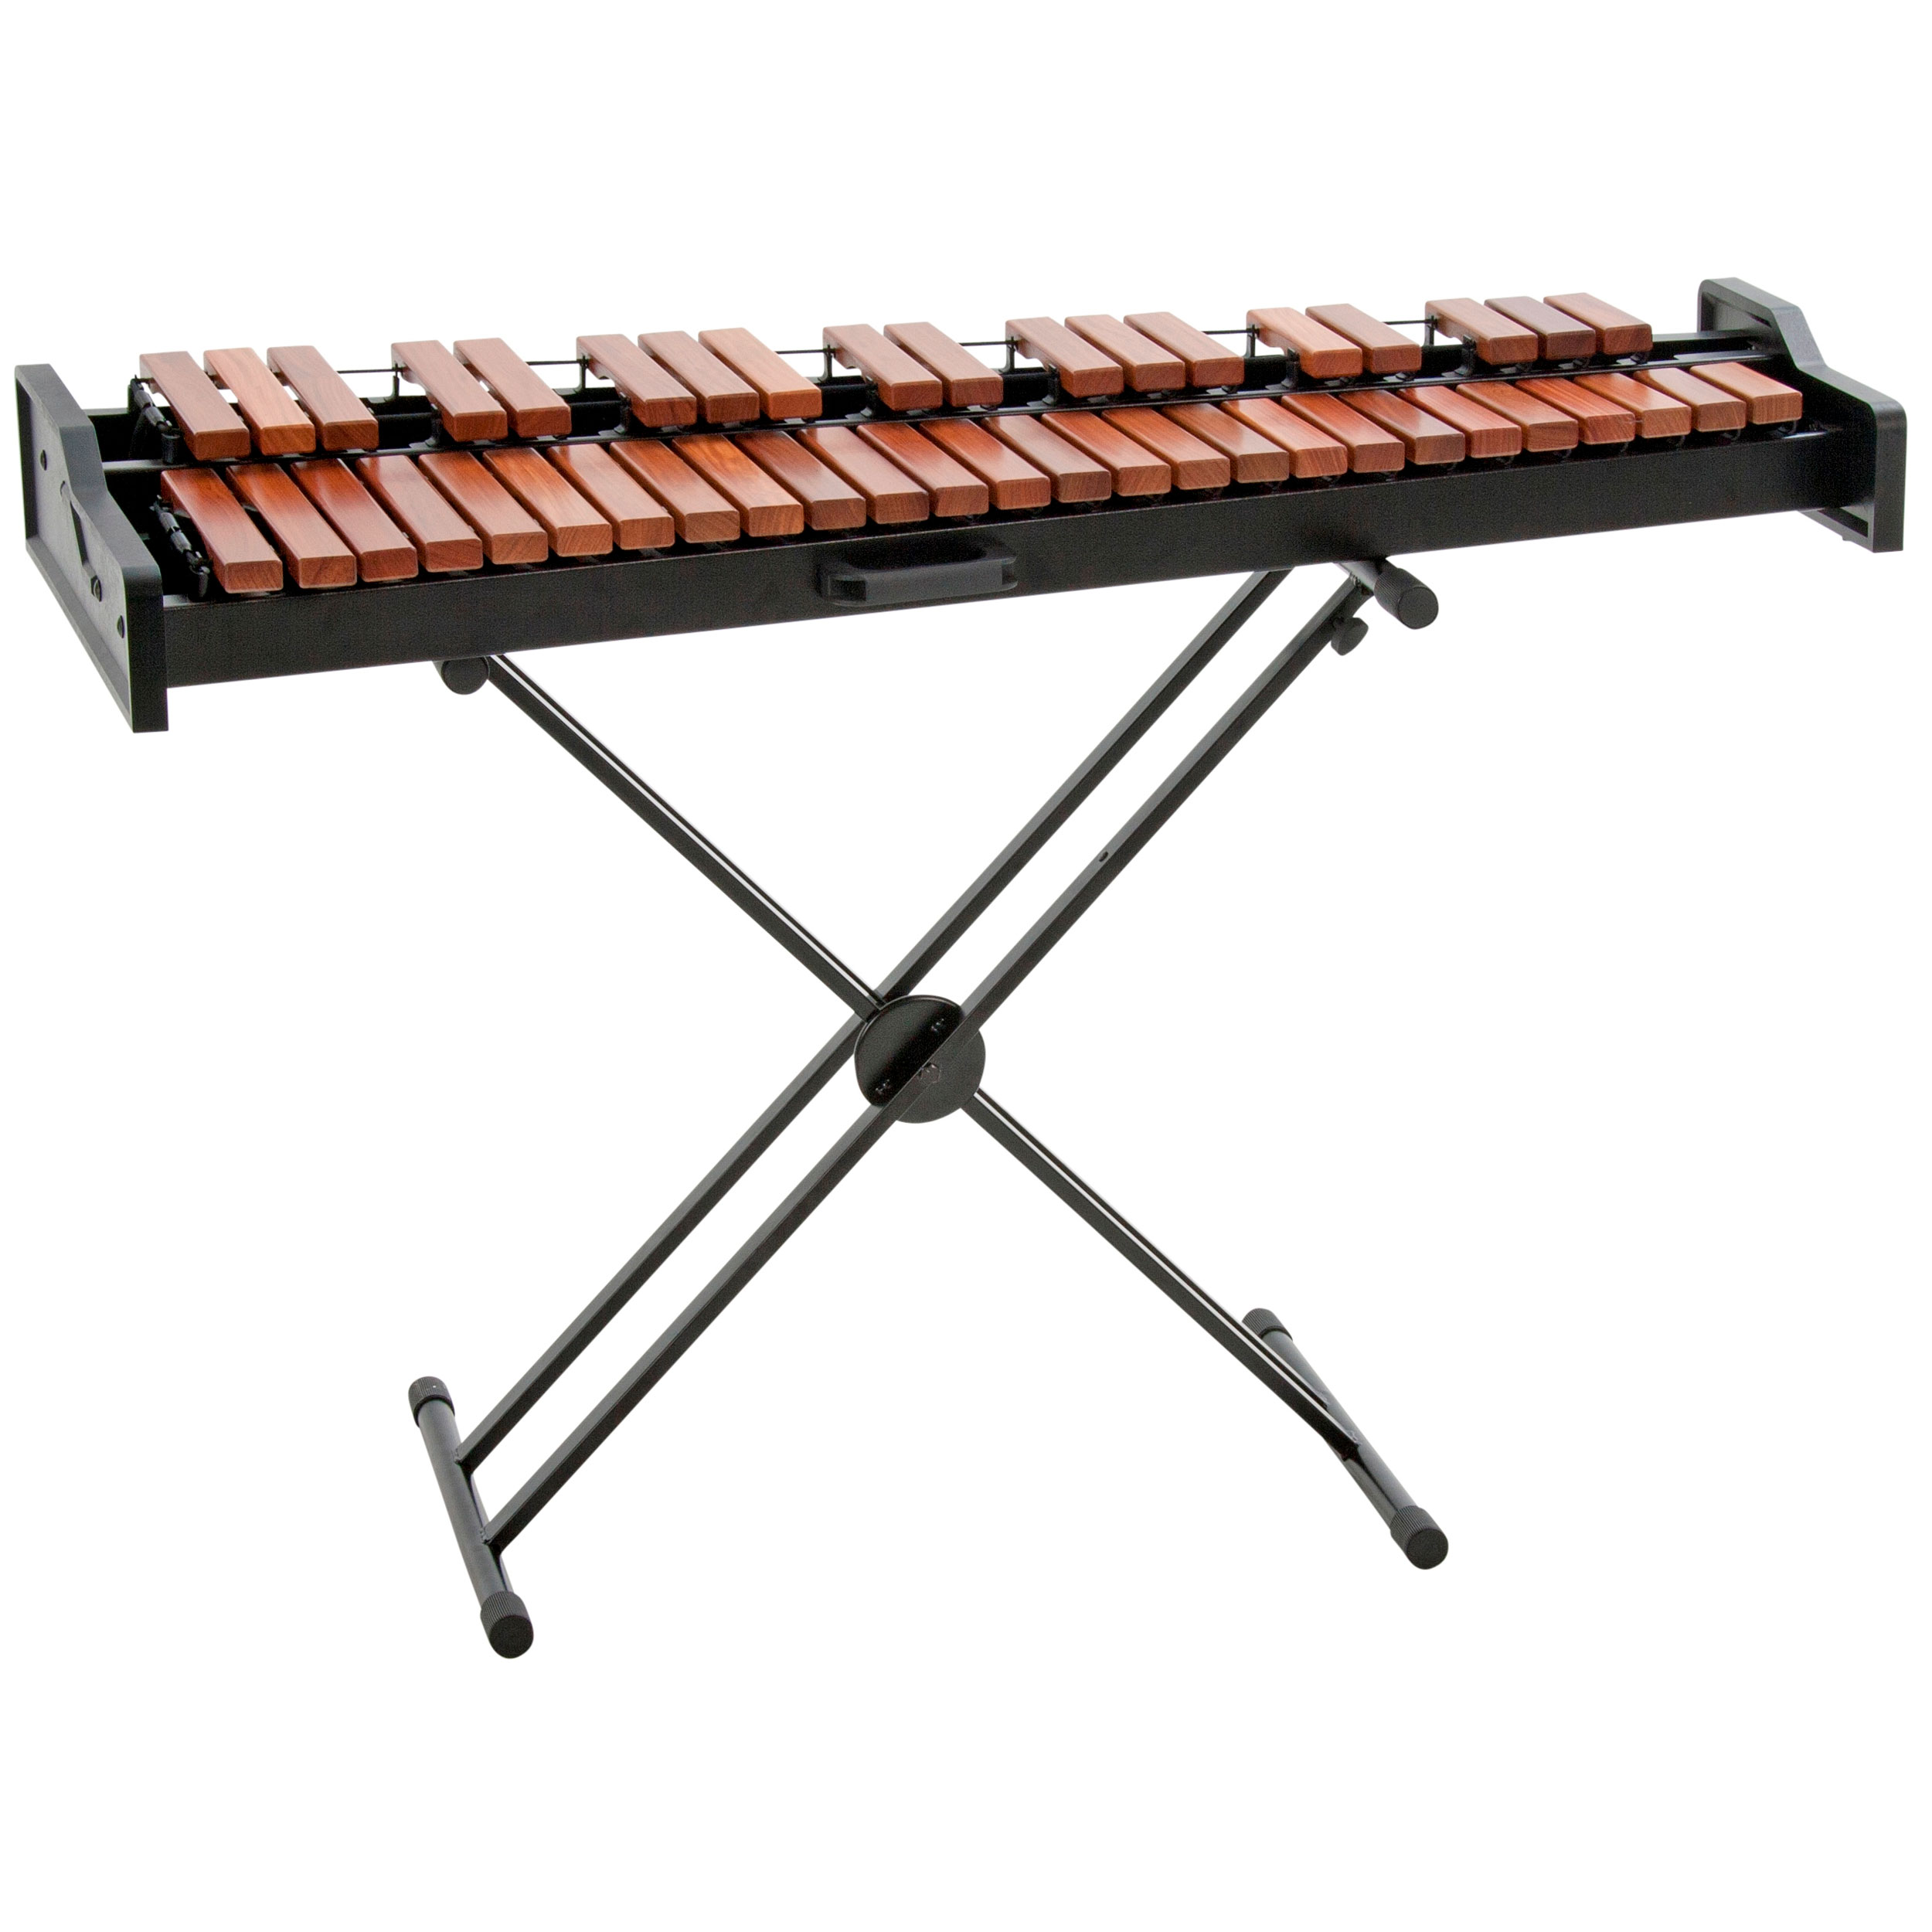 Adams 3.5 Octave Academy Series Xylophone with Stand